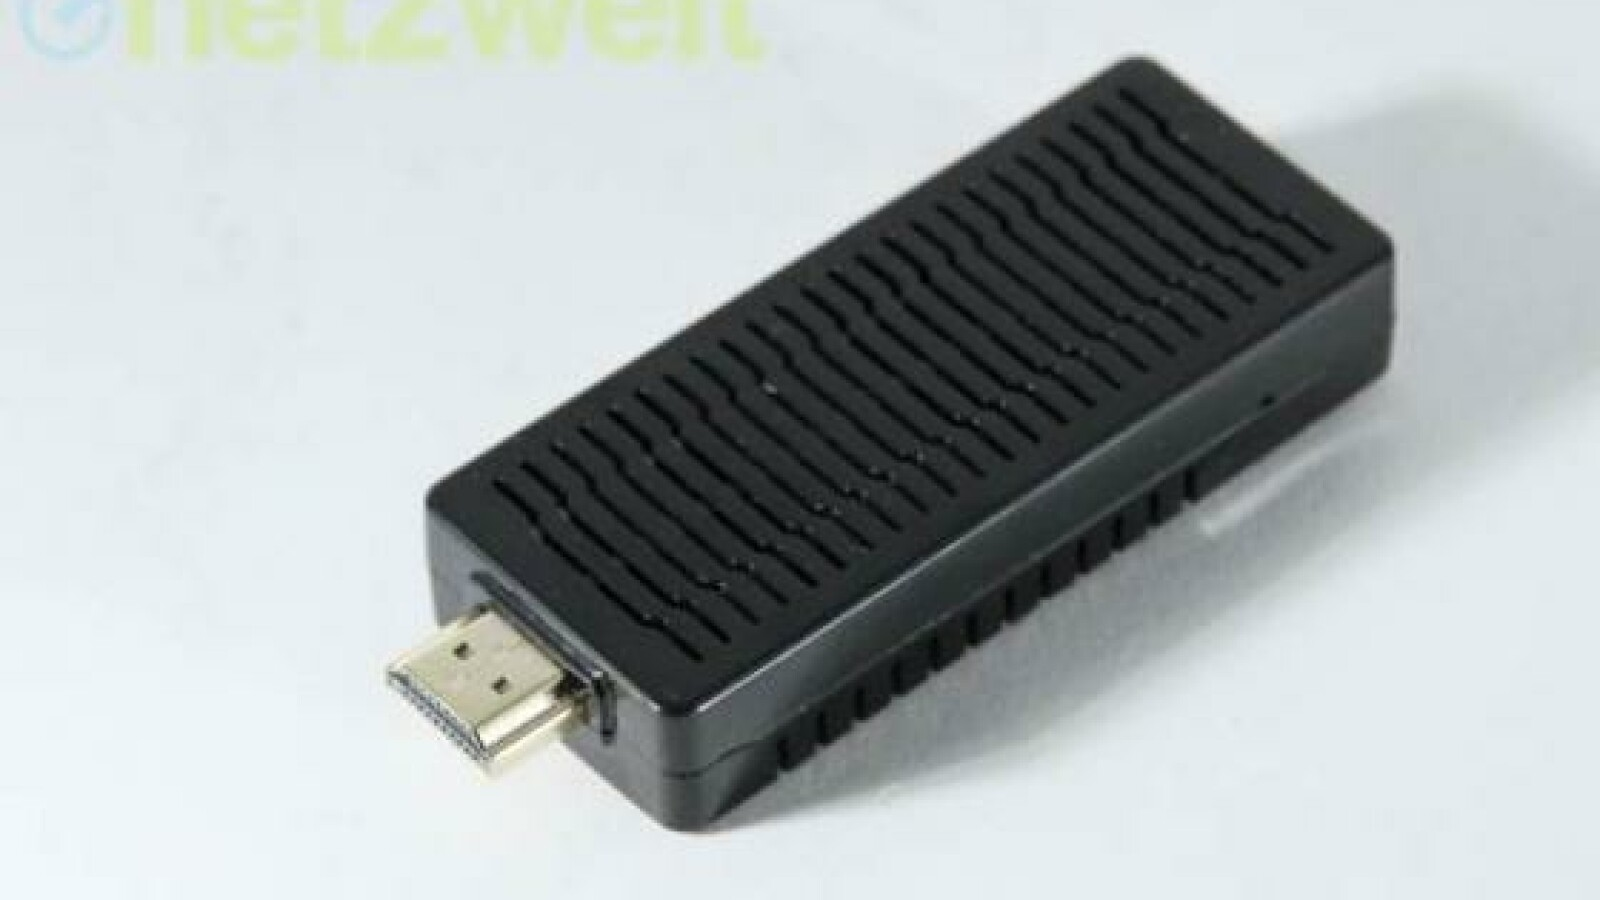 hama internet tv stick im test netzwelt. Black Bedroom Furniture Sets. Home Design Ideas